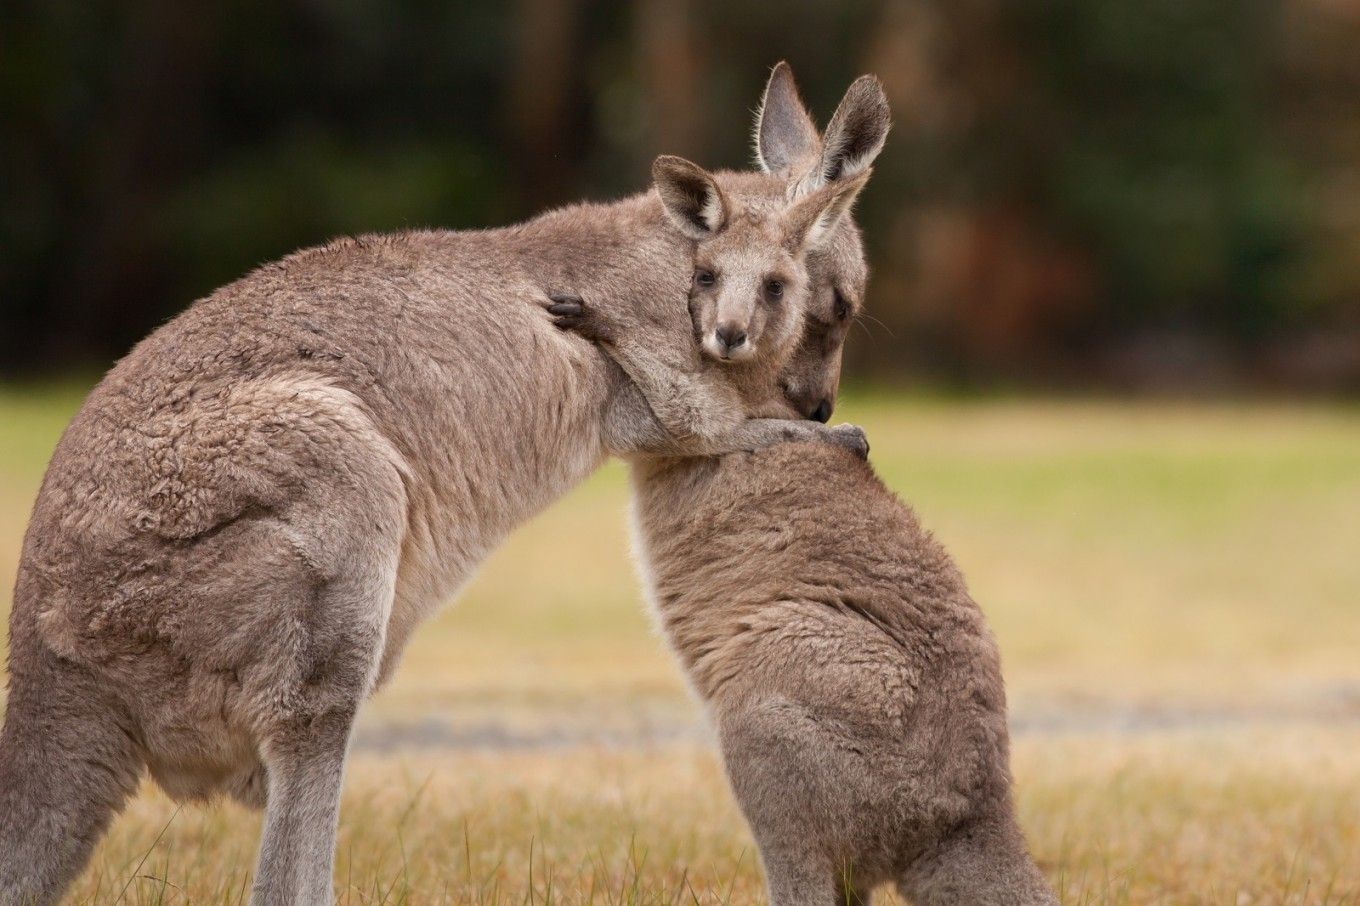 Kangaroos can 'communicate' with humans, says study